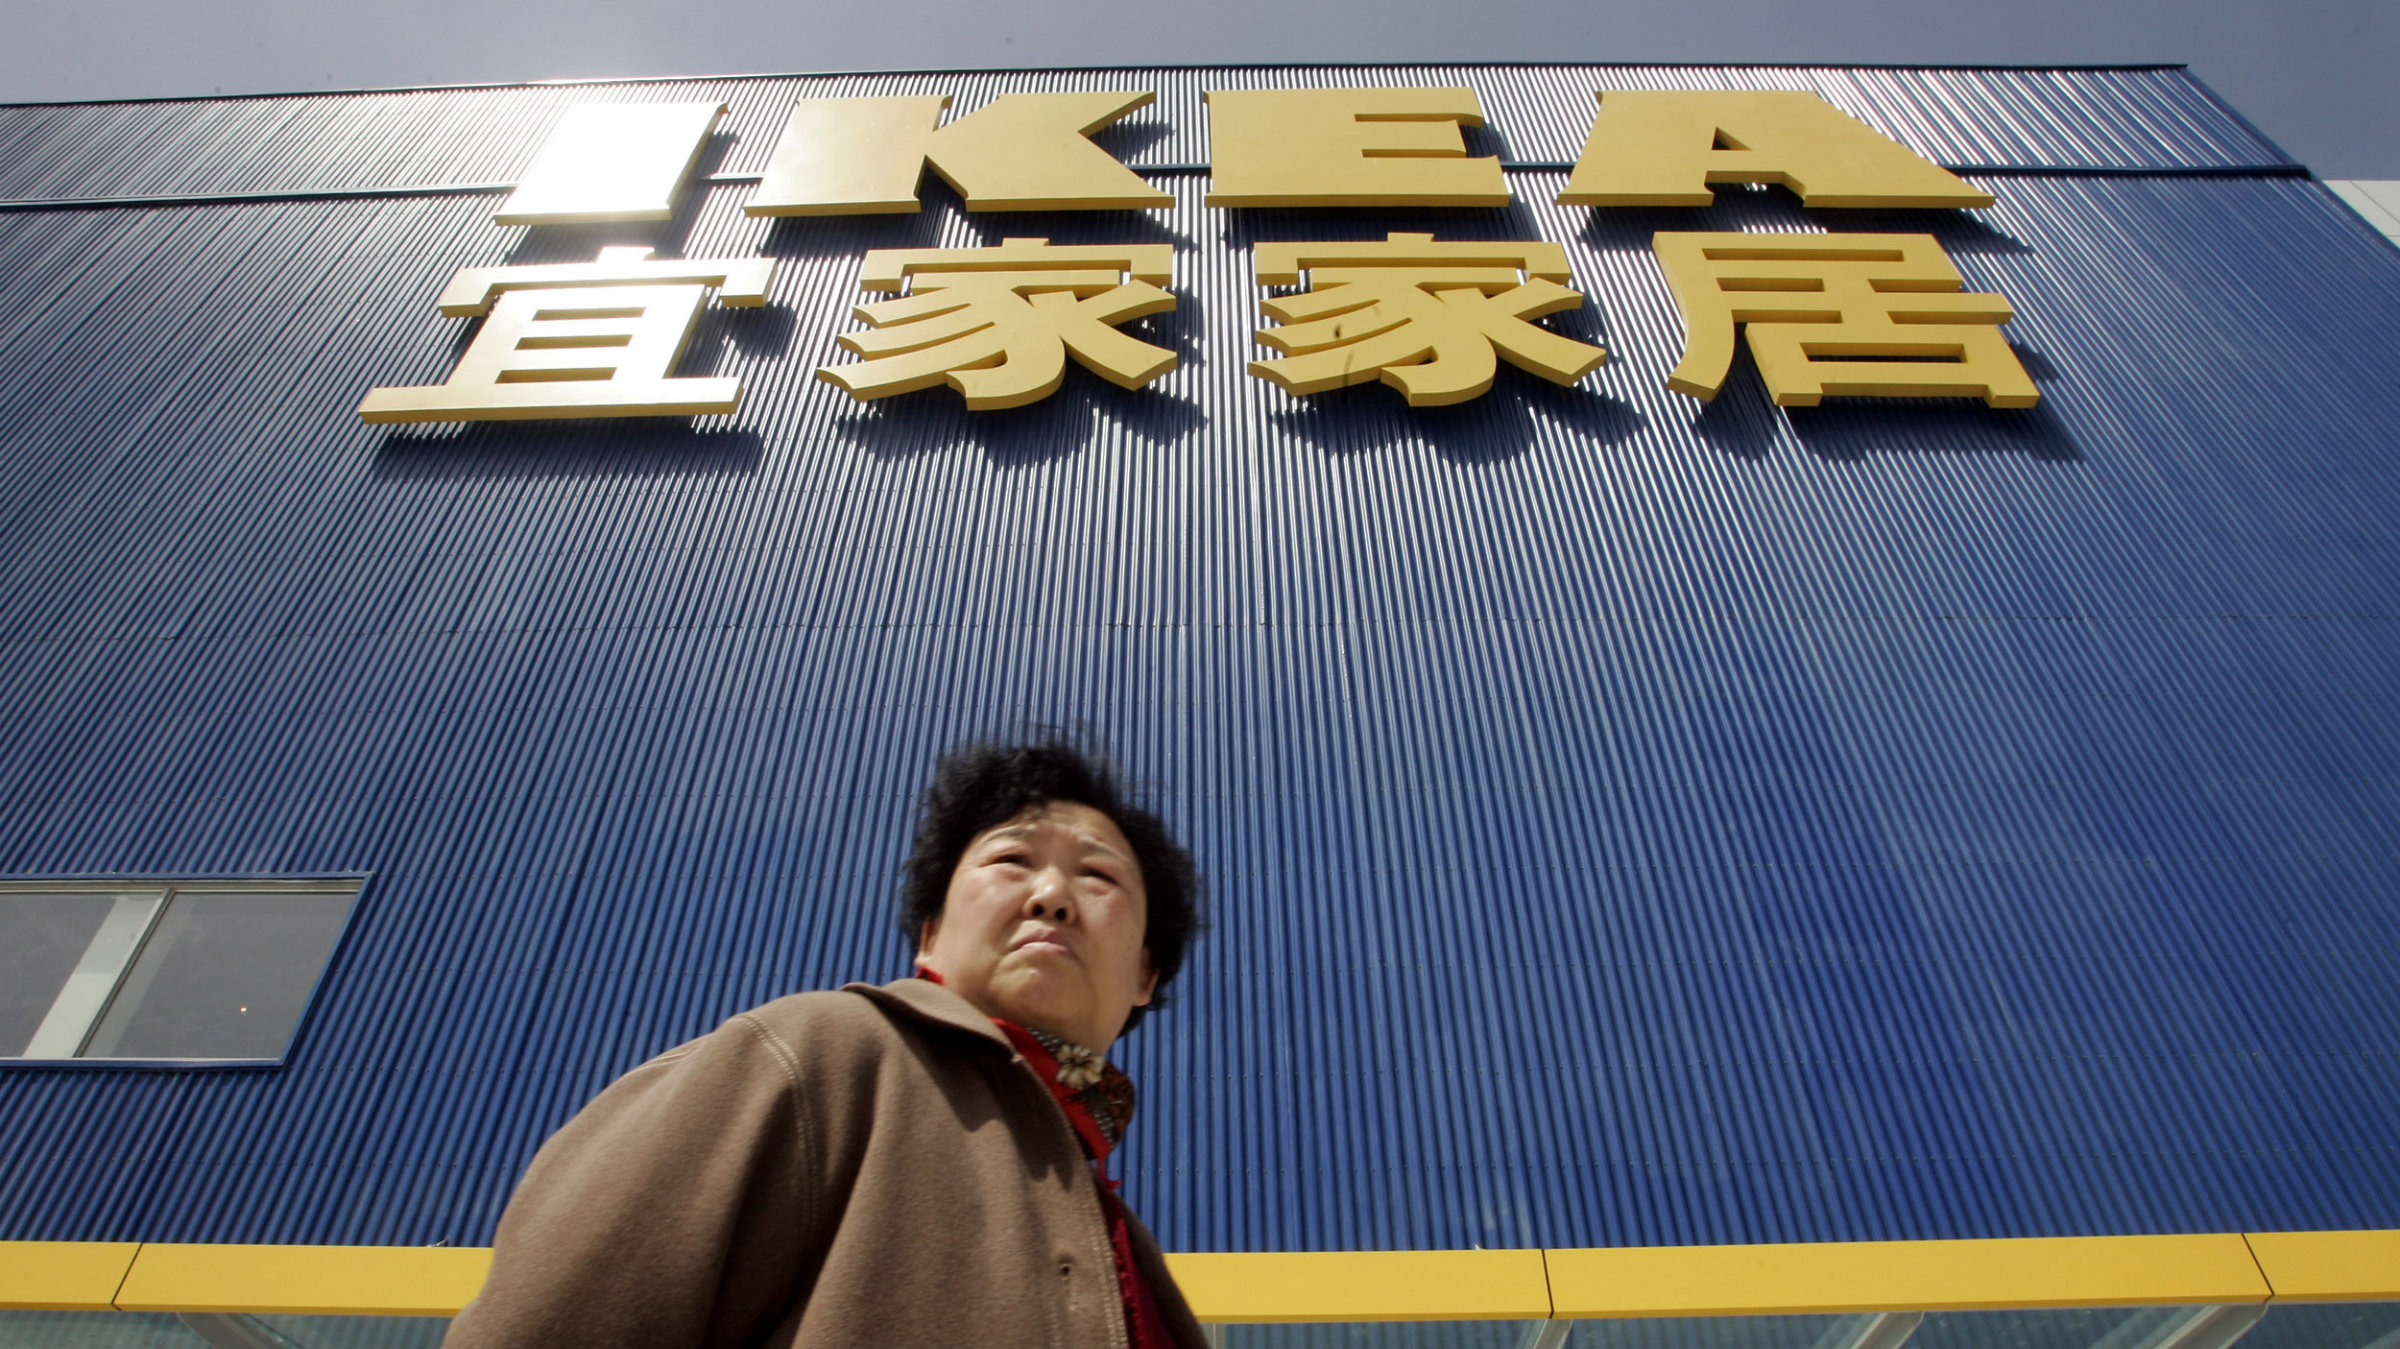 Ikea needs to open a lot more stores in China to meet its growth targets.